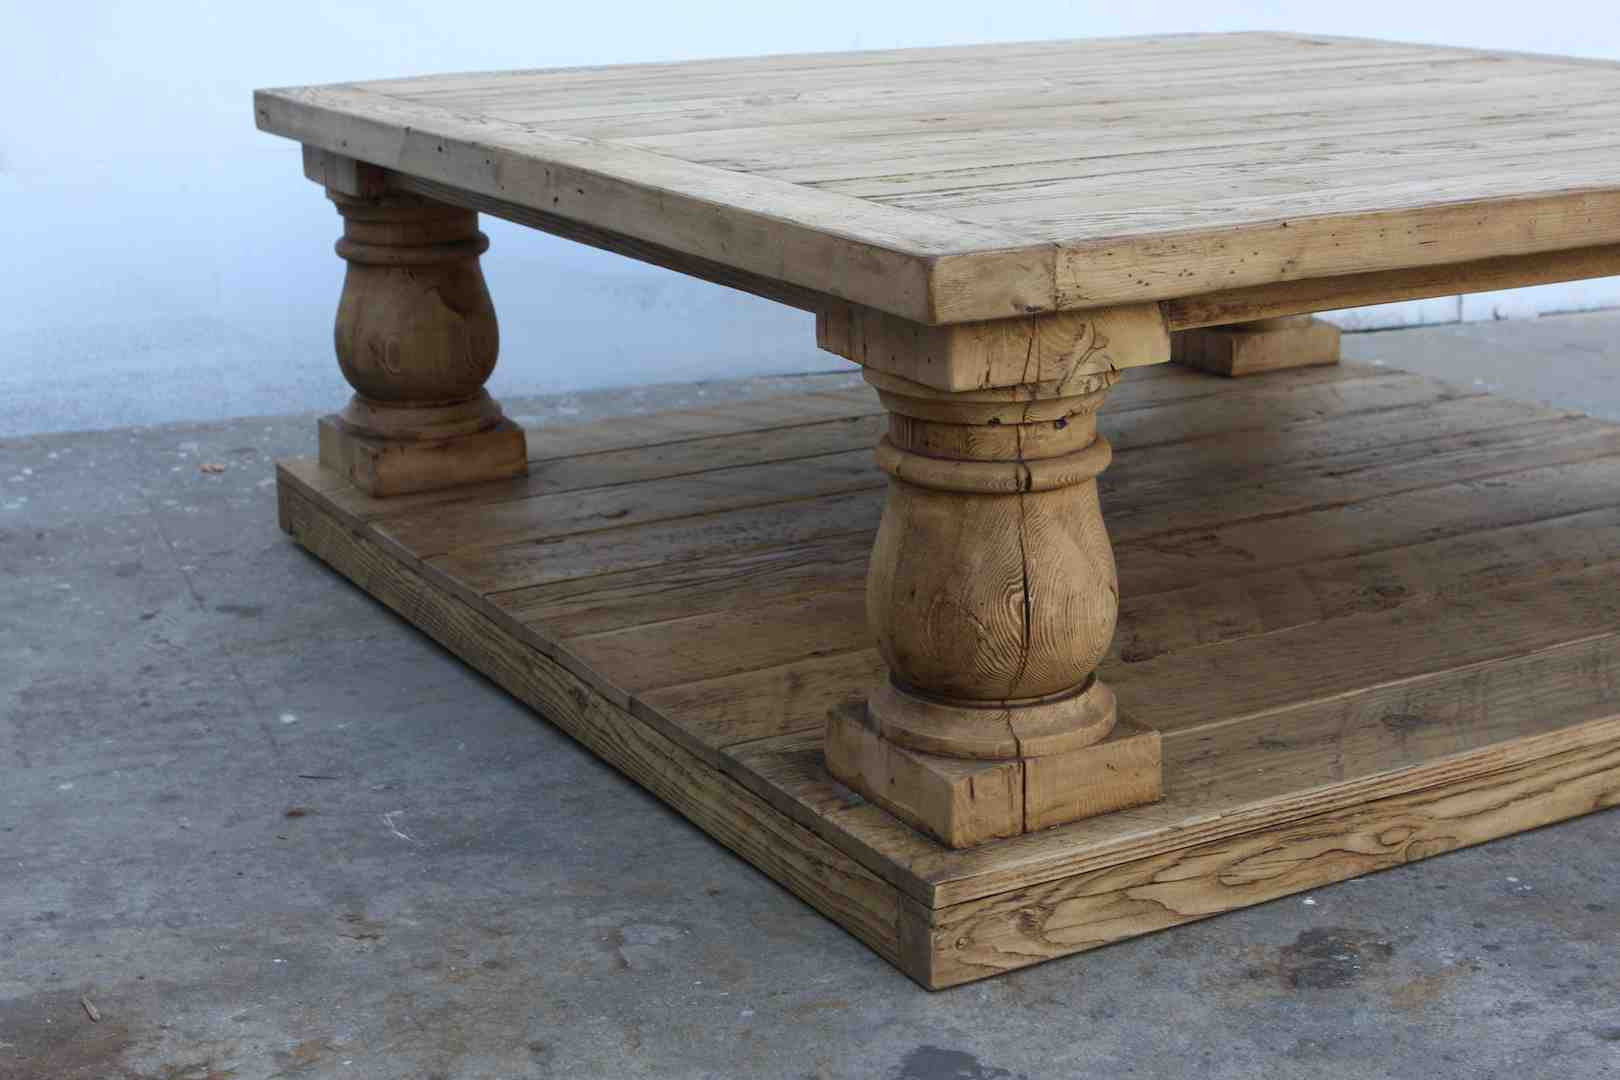 postobello large turned leg coffee table built in reclaimed wood